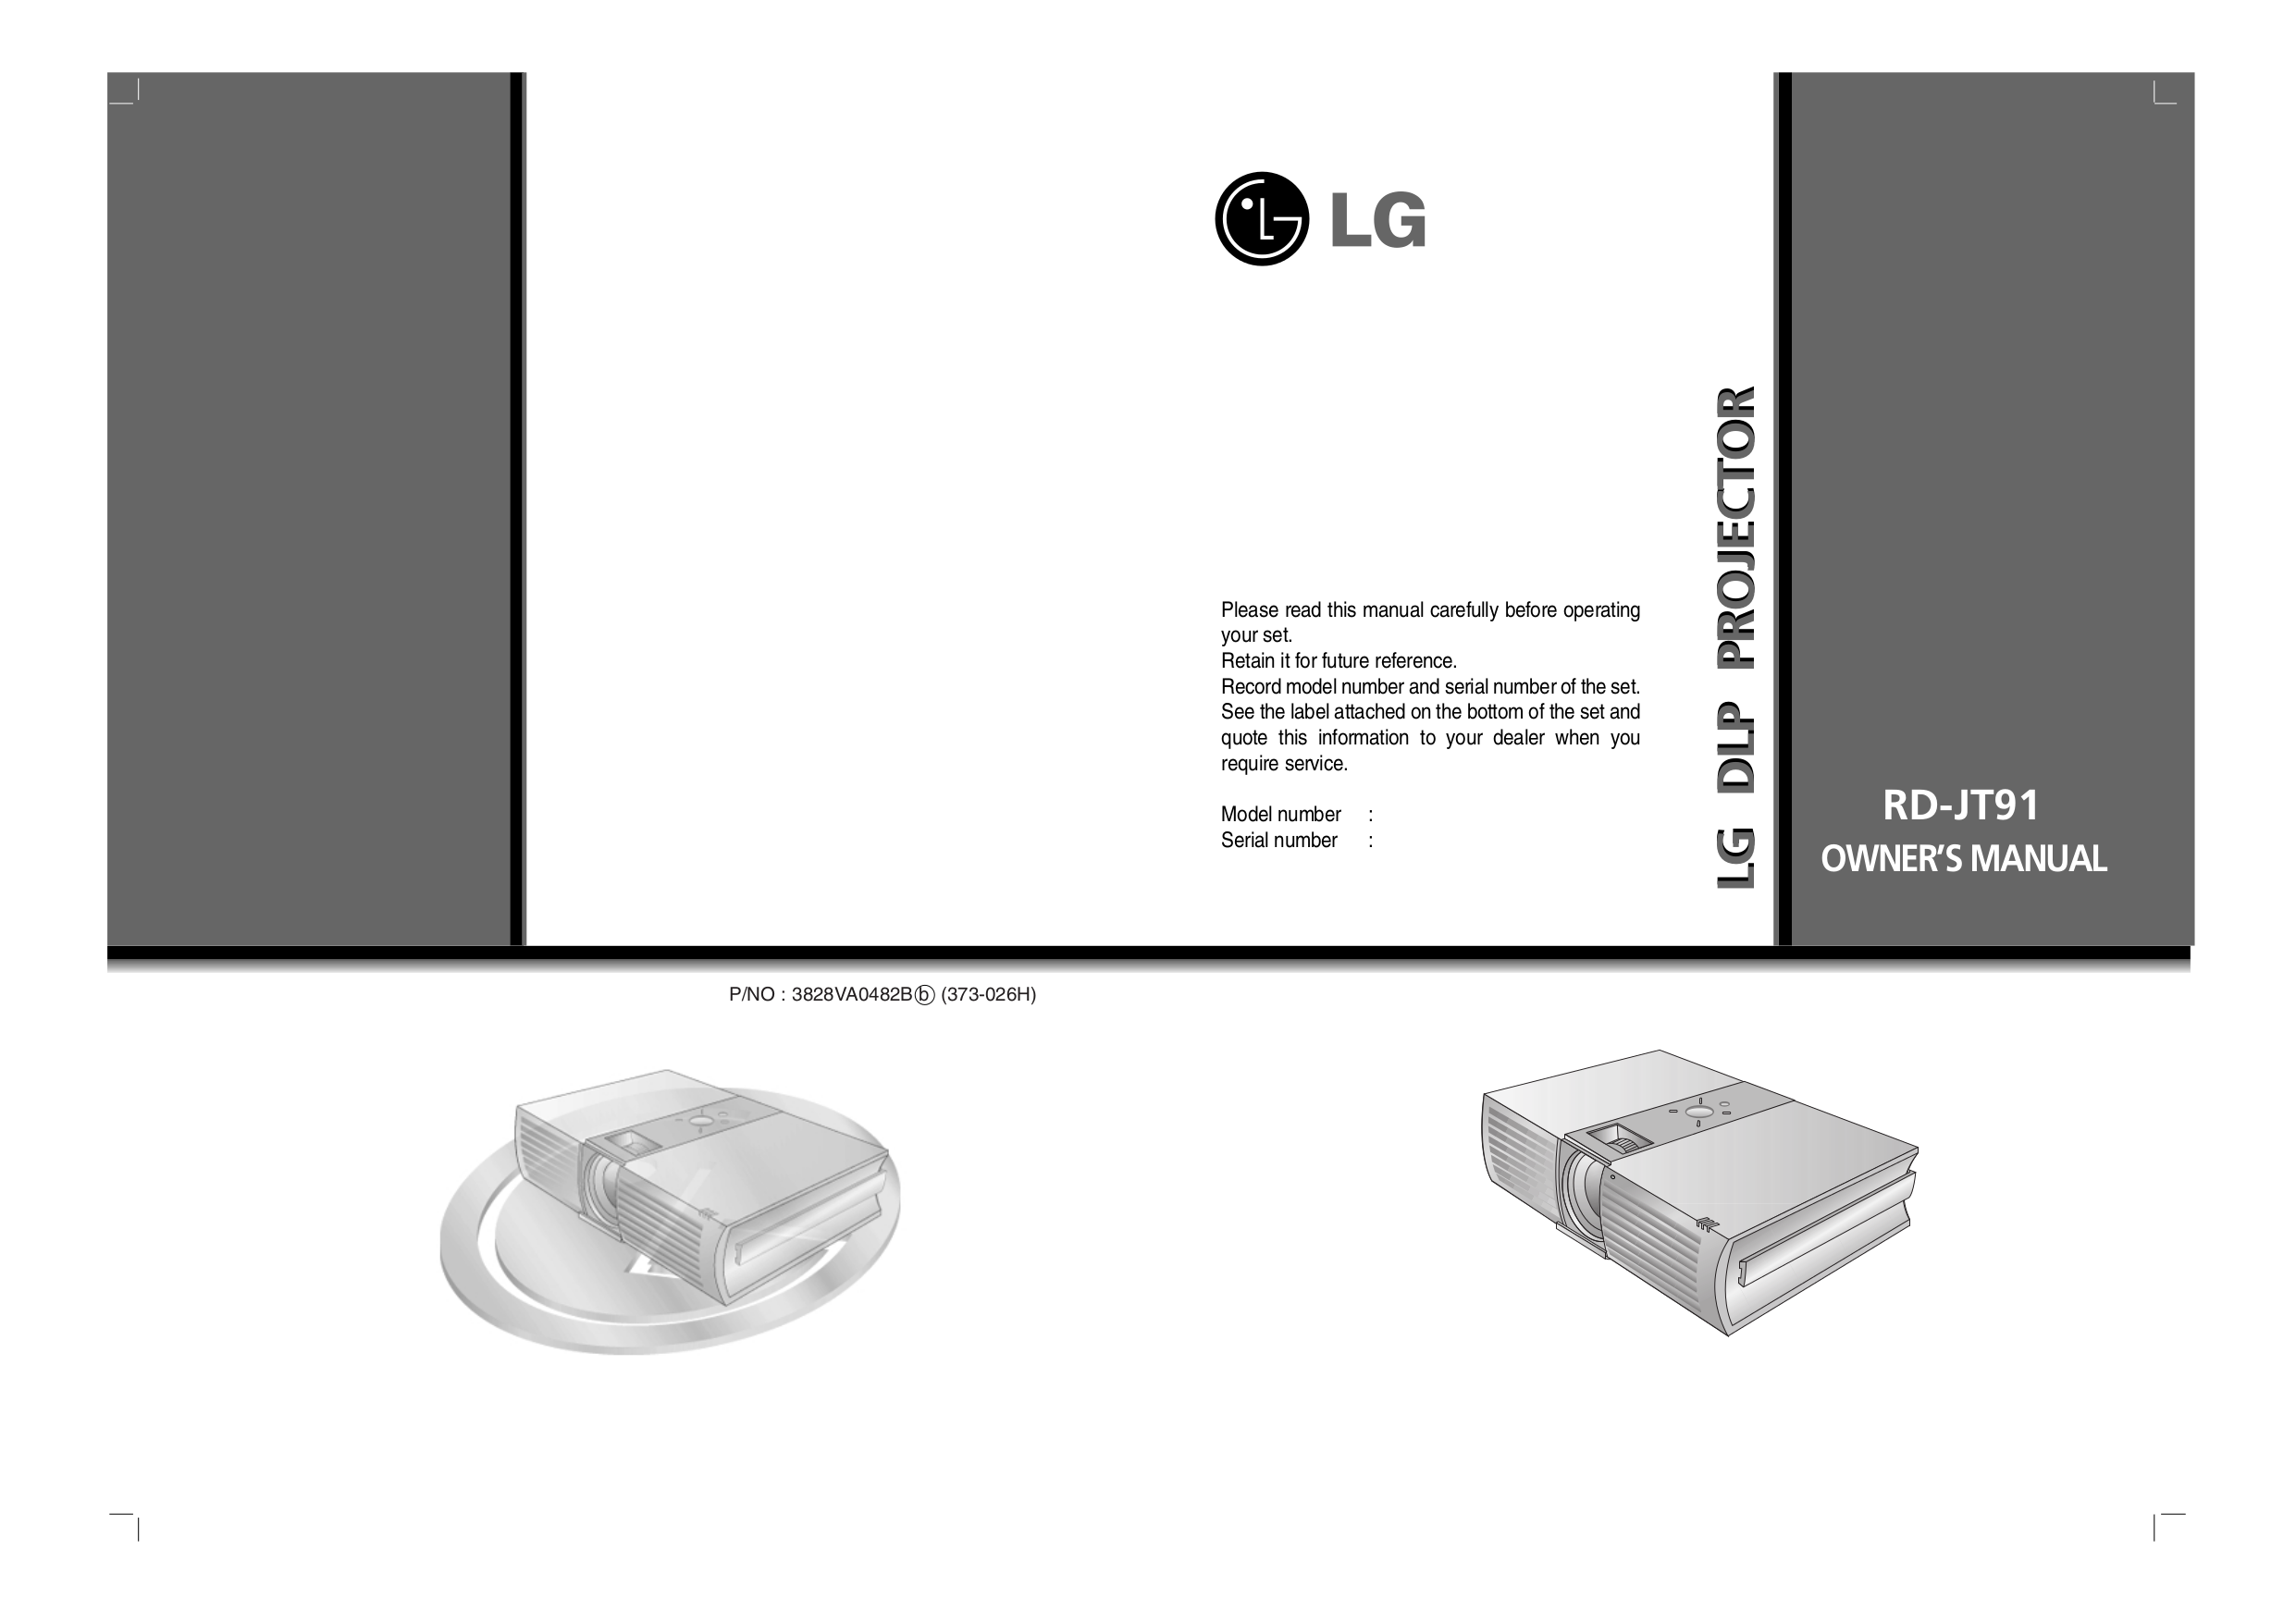 pdf for LG Projector RD-JT91 manual